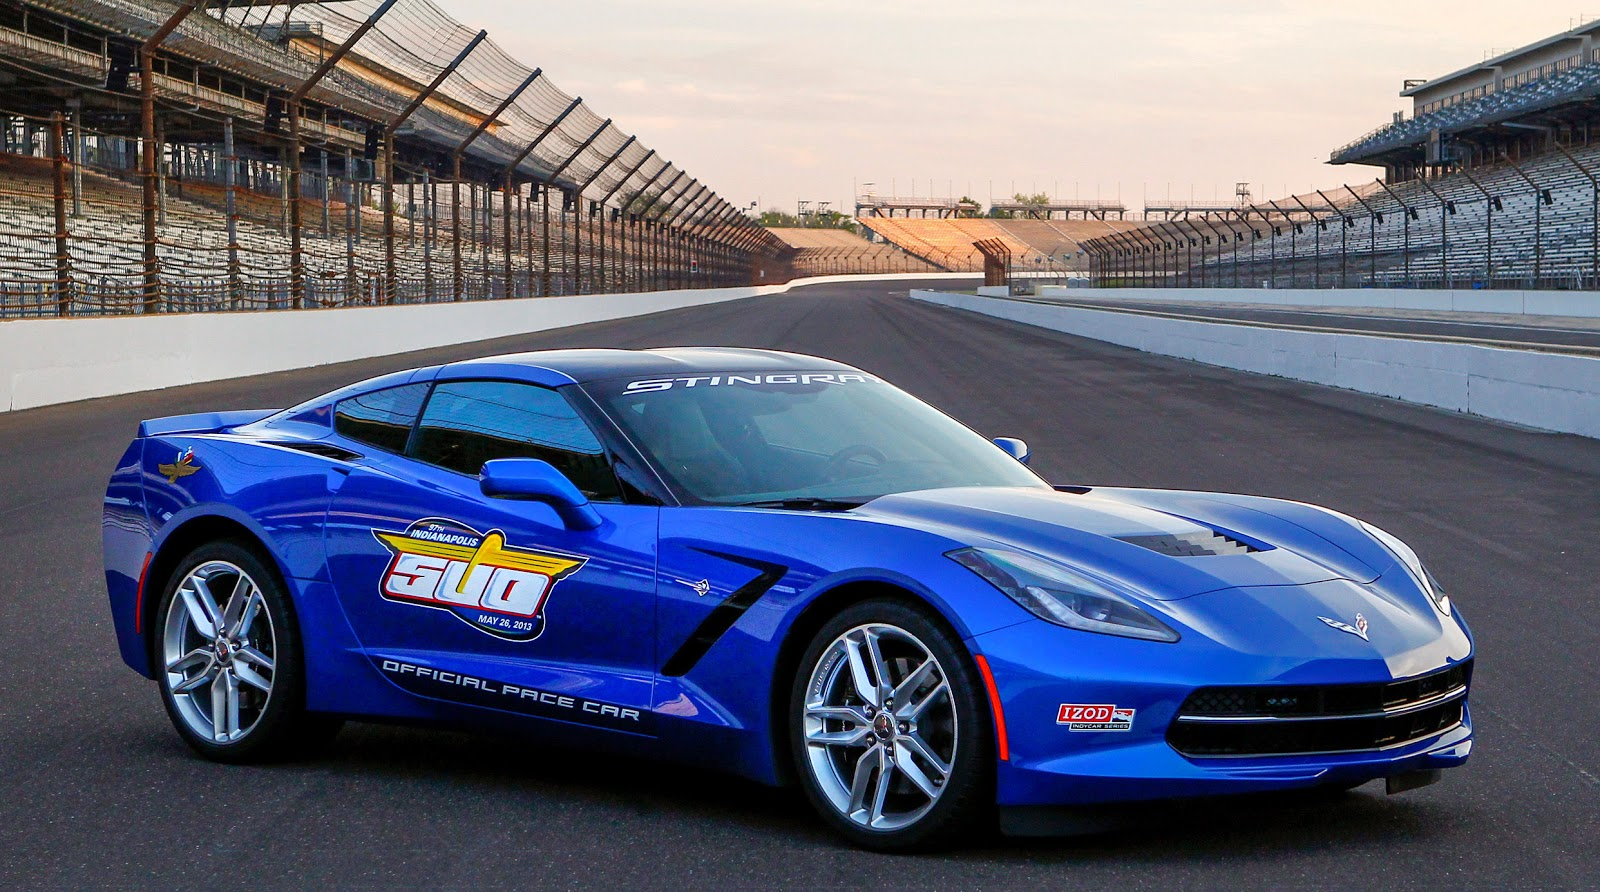 2014 Corvette Stingray To Pace 97th Indianapolis 500 The